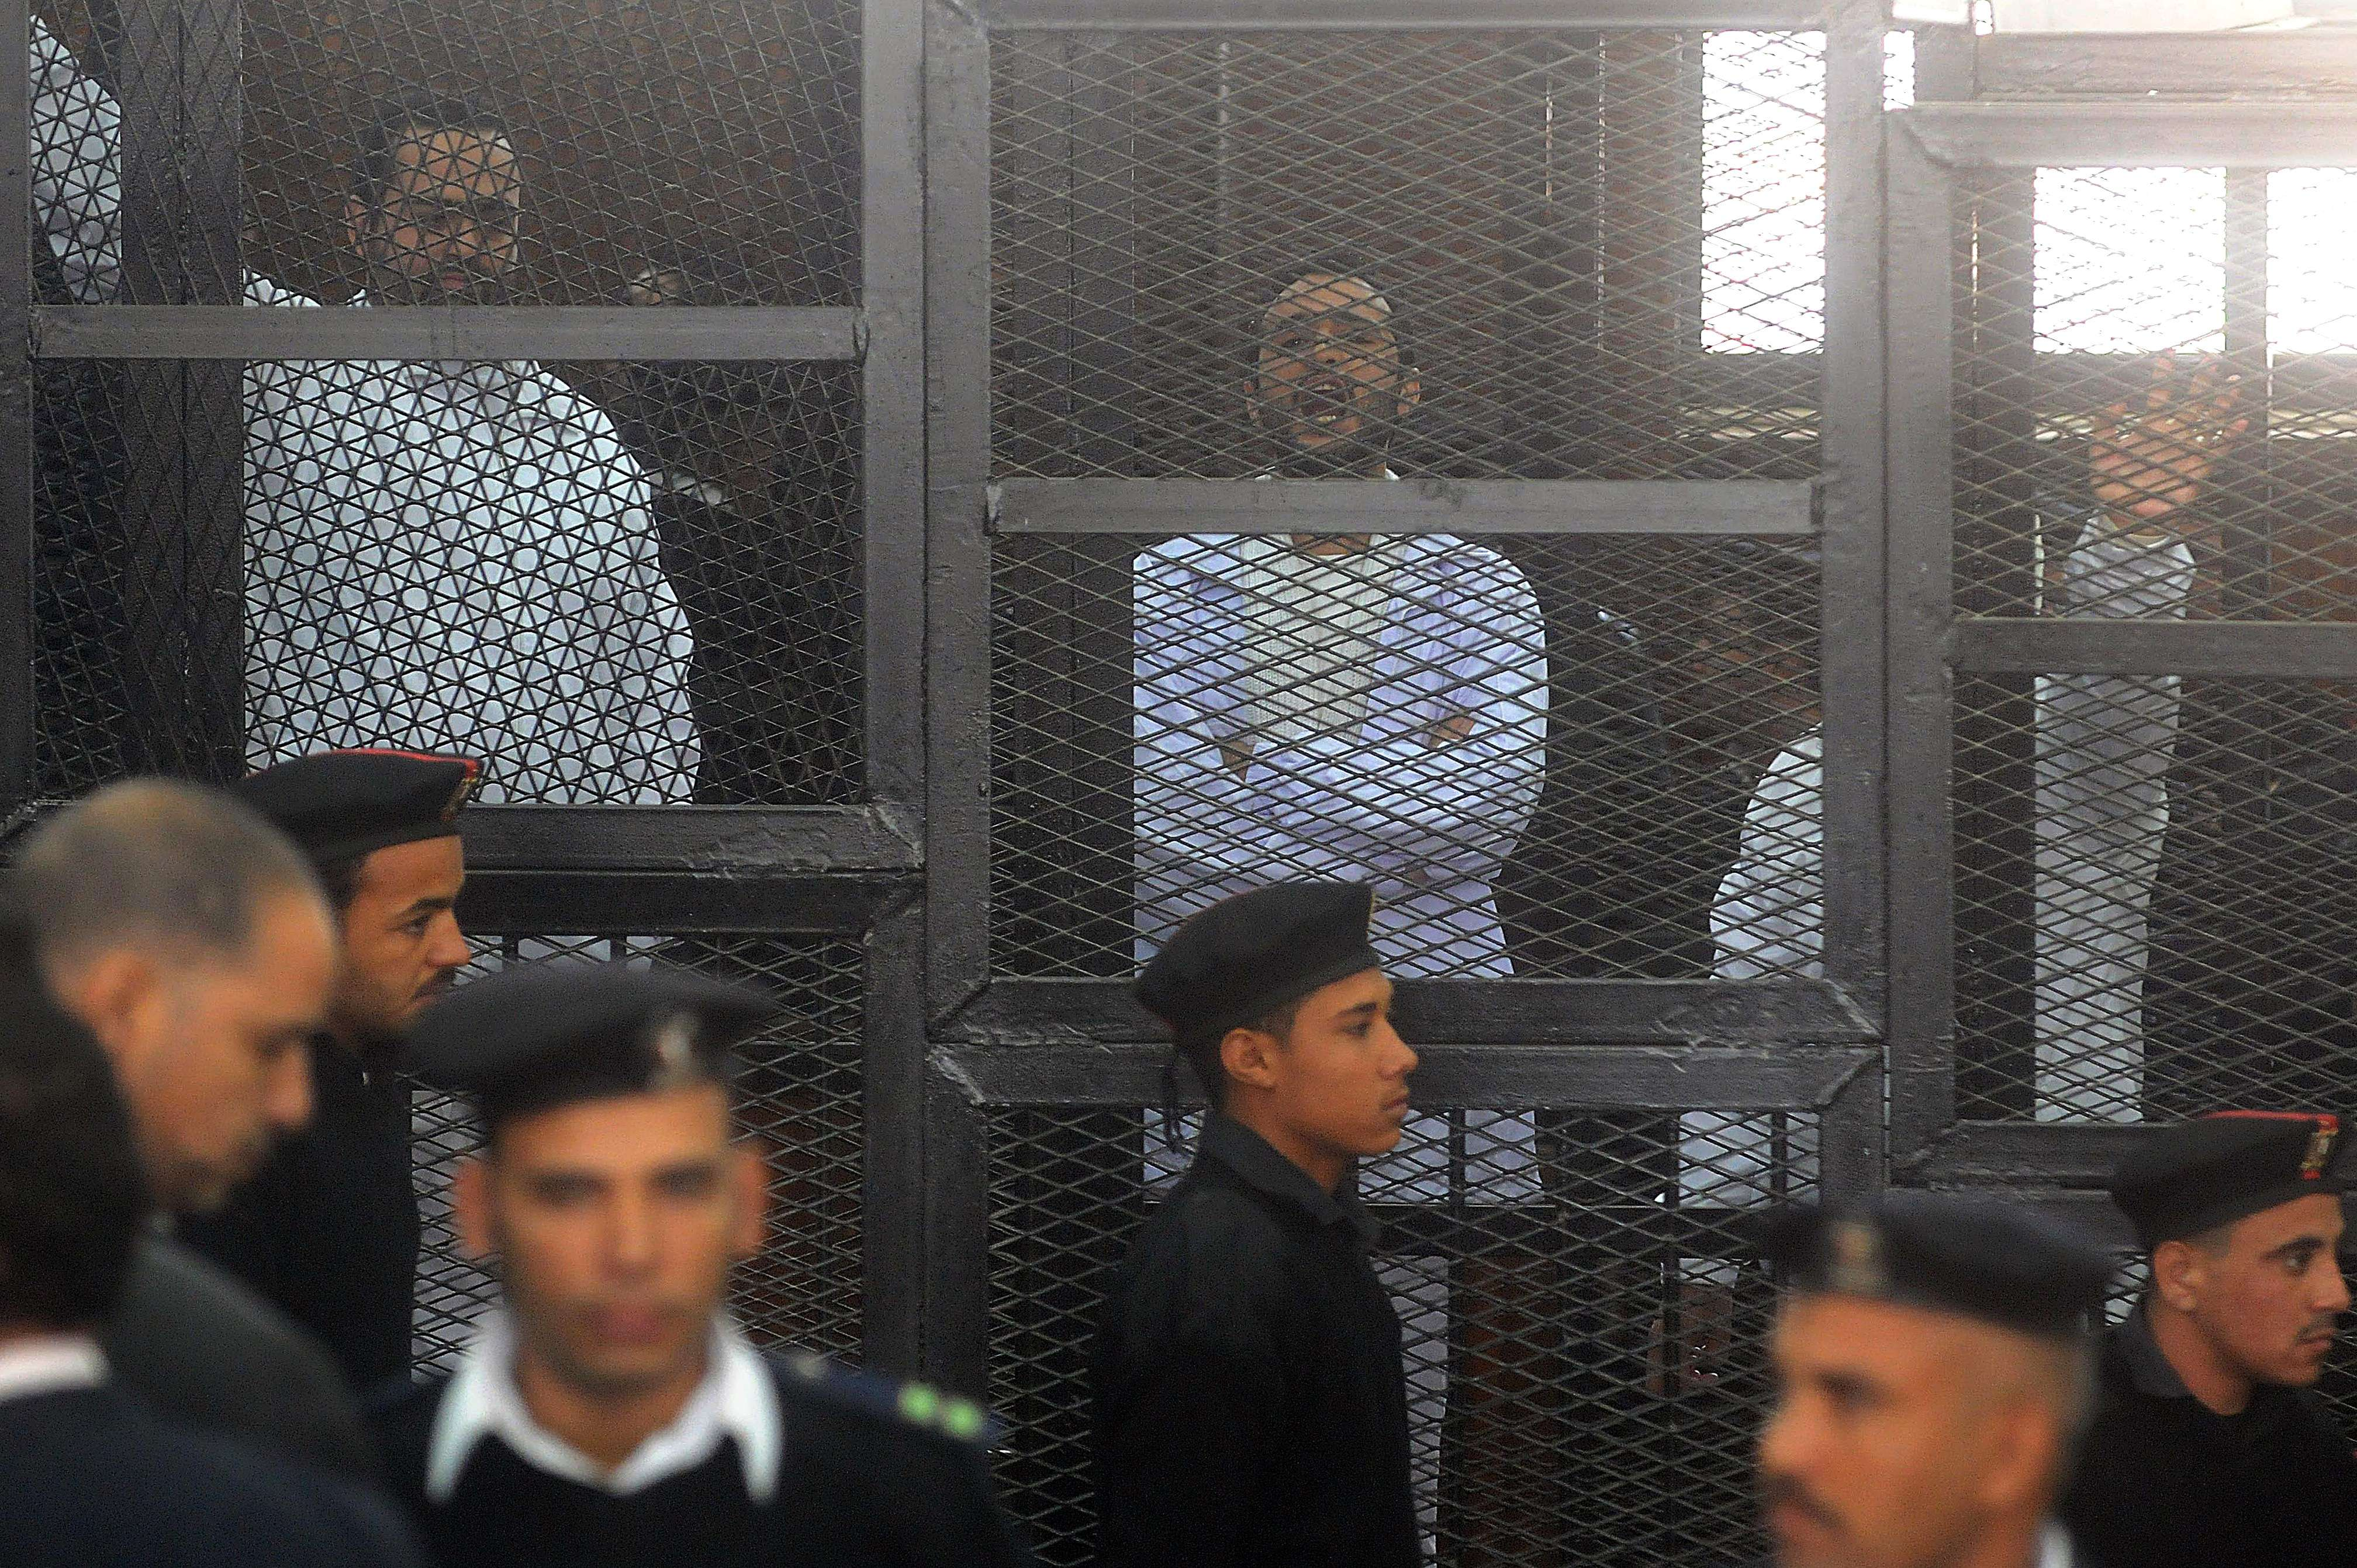 Egyptian activicts Mohamed Adel (L), Ahmed Douma (C) and Ahmed Maher (R) stand in the accused dock during their trial on December 22, 2013 in the capital Cairo. An Egyptian court sentenced three activists who spearheaded the 2011 uprising against Hosni Mubarak to three years in jail for organising an unlicensed protest, judicial sources said. It was the first such verdict against non-Islamist protesters since the overthrow of president Mohamed Morsi in July, and was seen by rights groups as part of a widening crackdown on demonstrations by military-installed authorities.  (AFP PHOTO/STR)